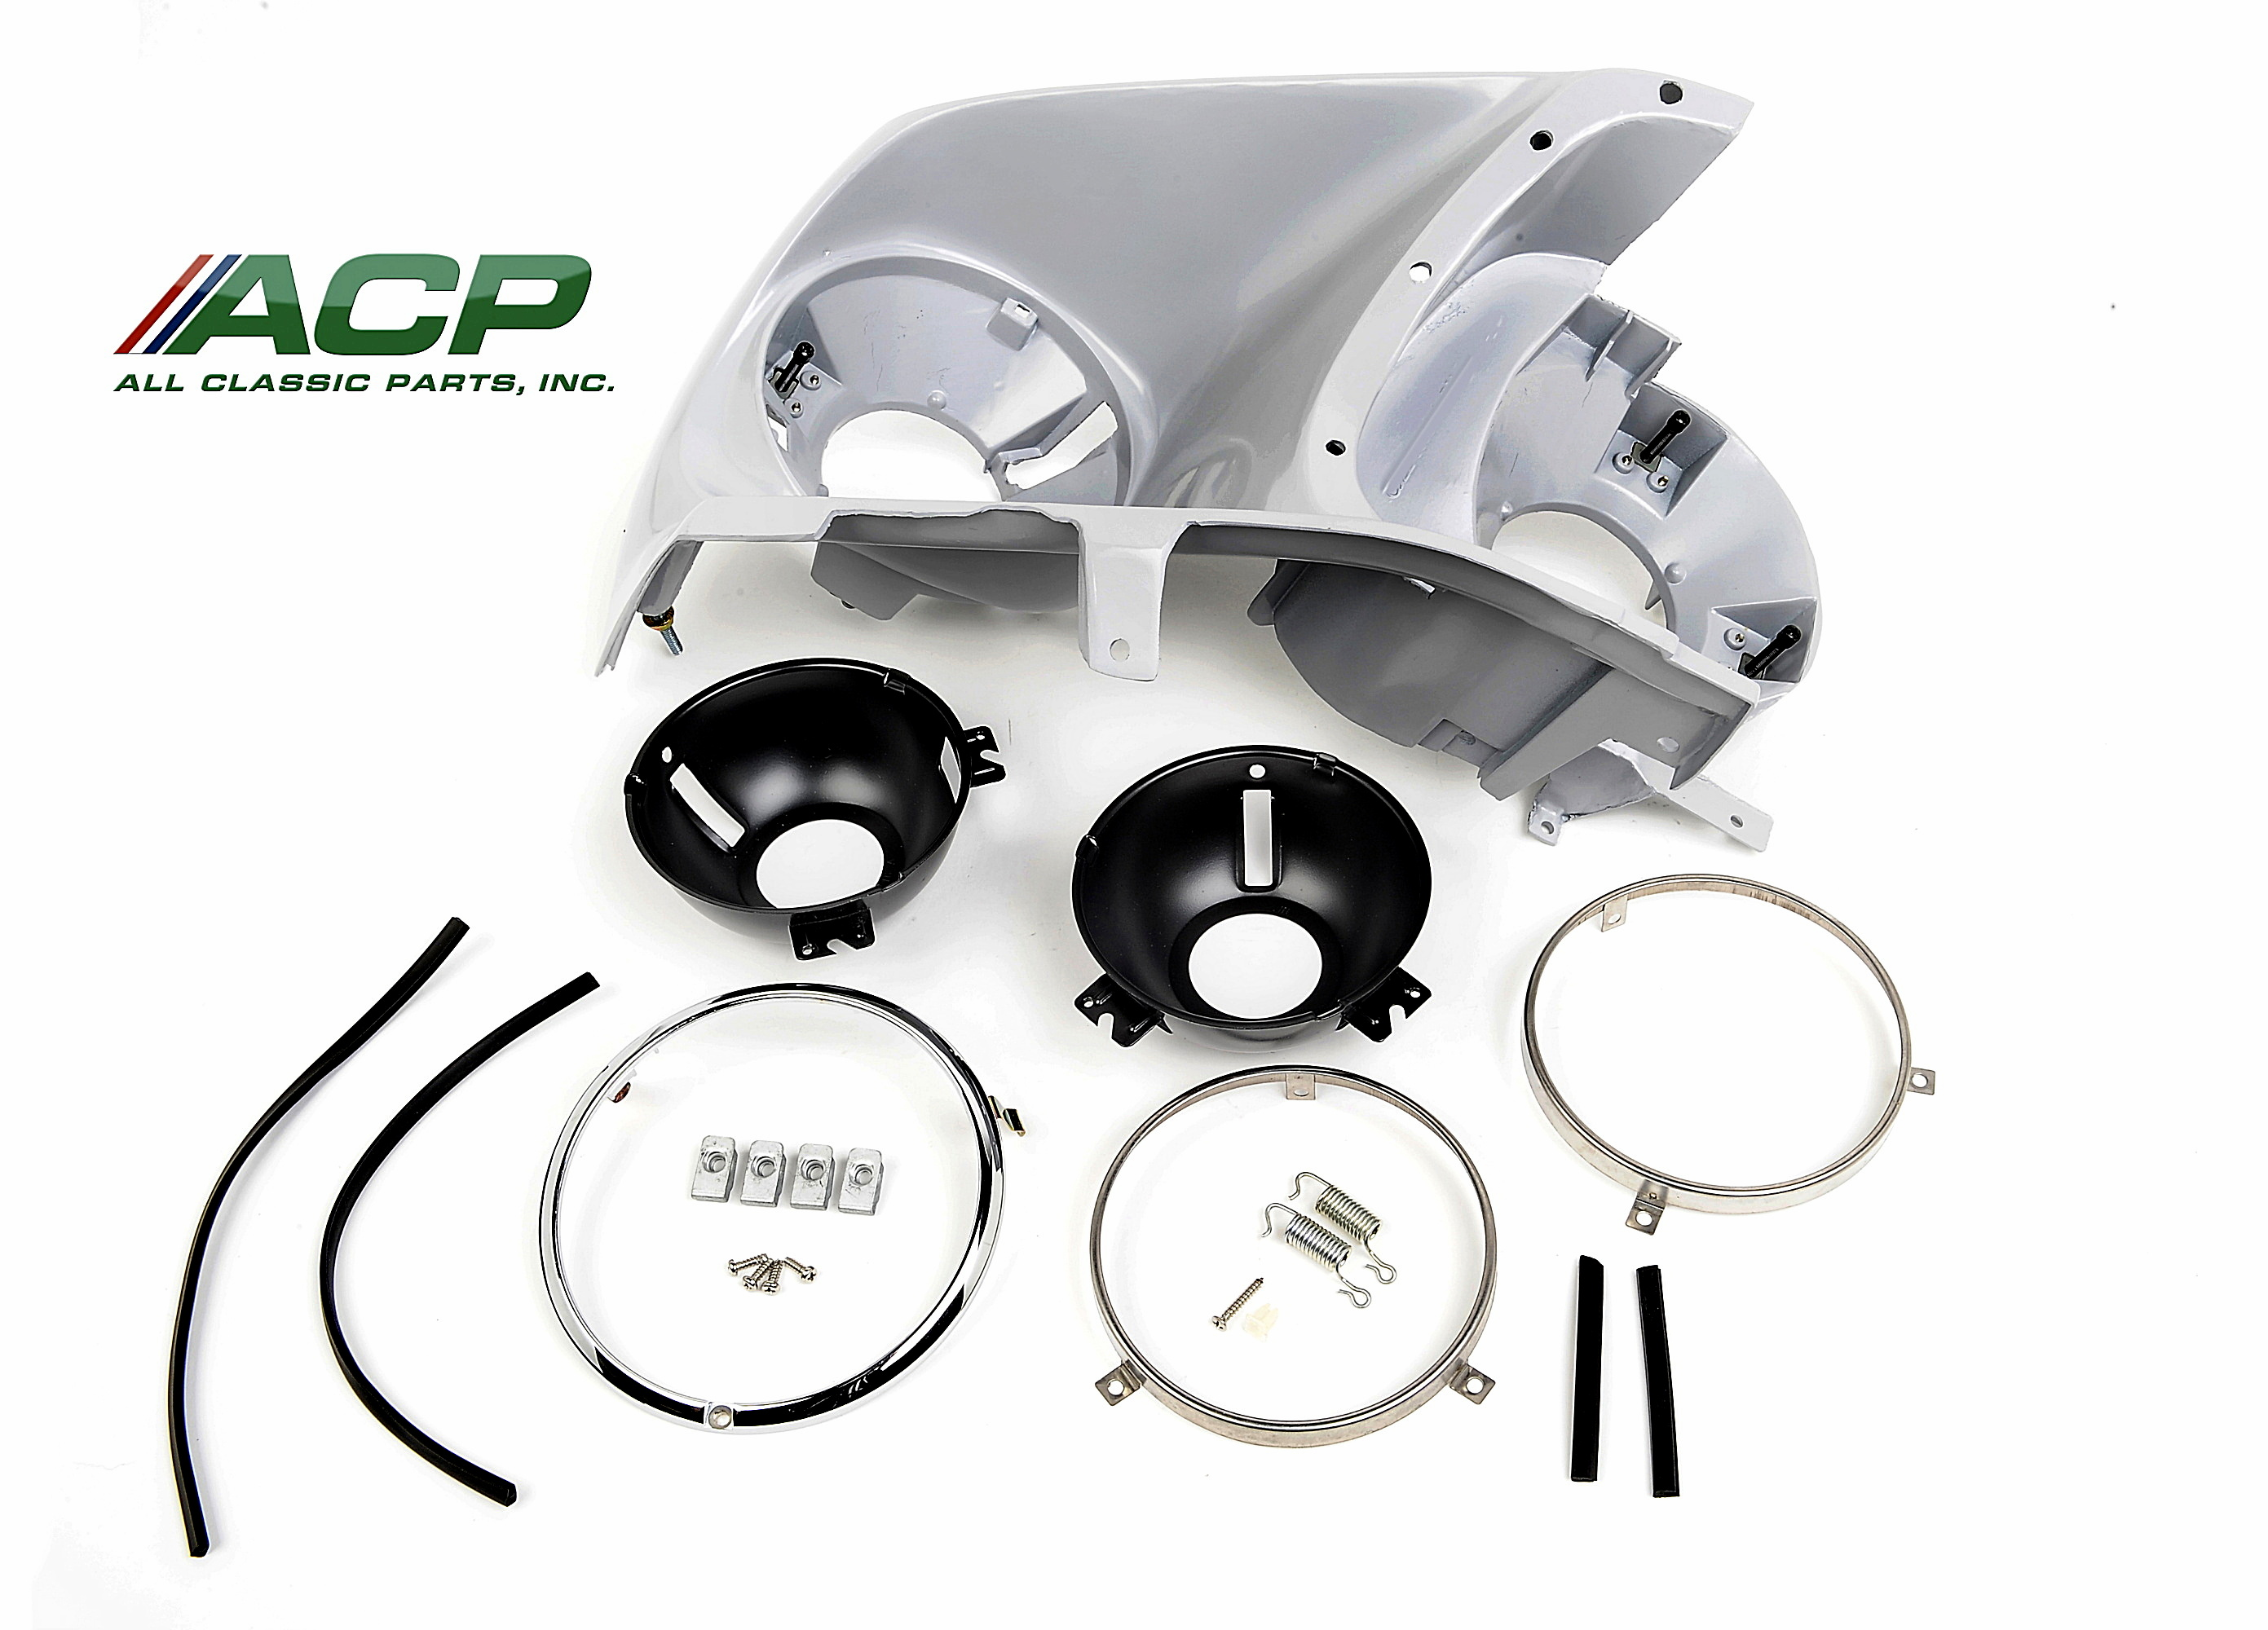 1969 Ford Mustang Headlight Assembly Kit Right Hand New Passenger Side